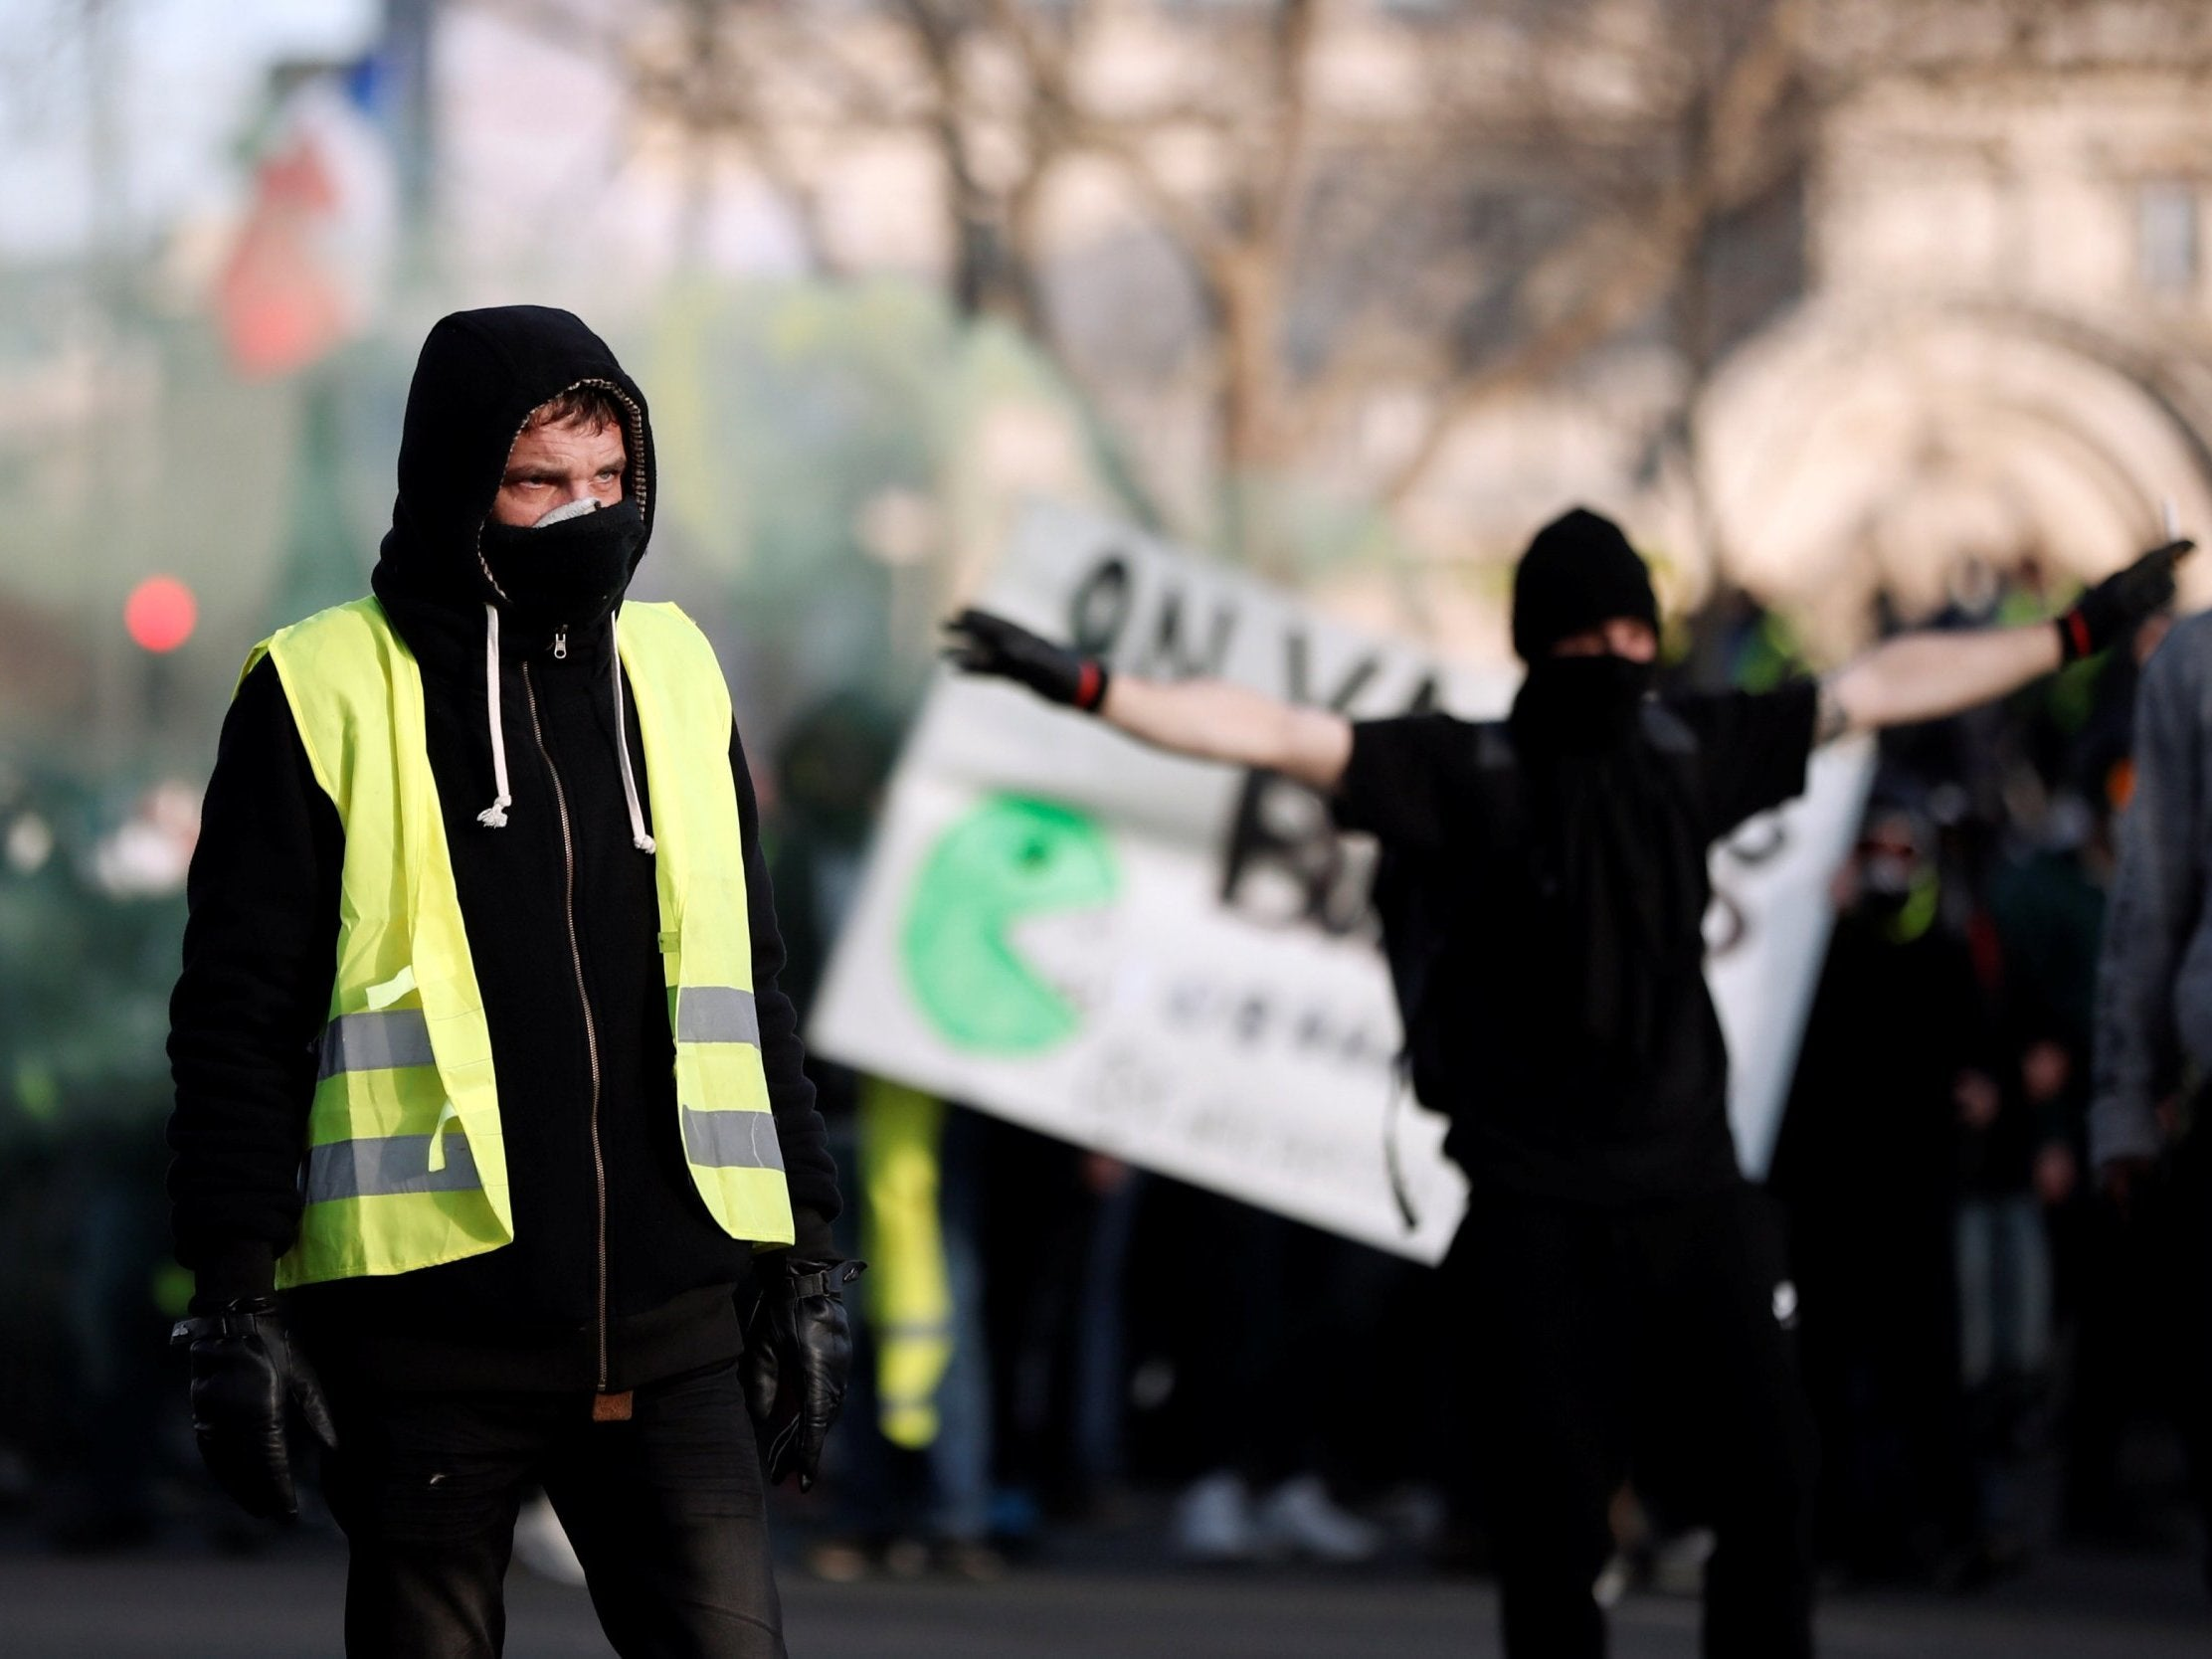 Emmanuel Macron condemns antisemitic abuse at yellow vest demonstrations in Paris